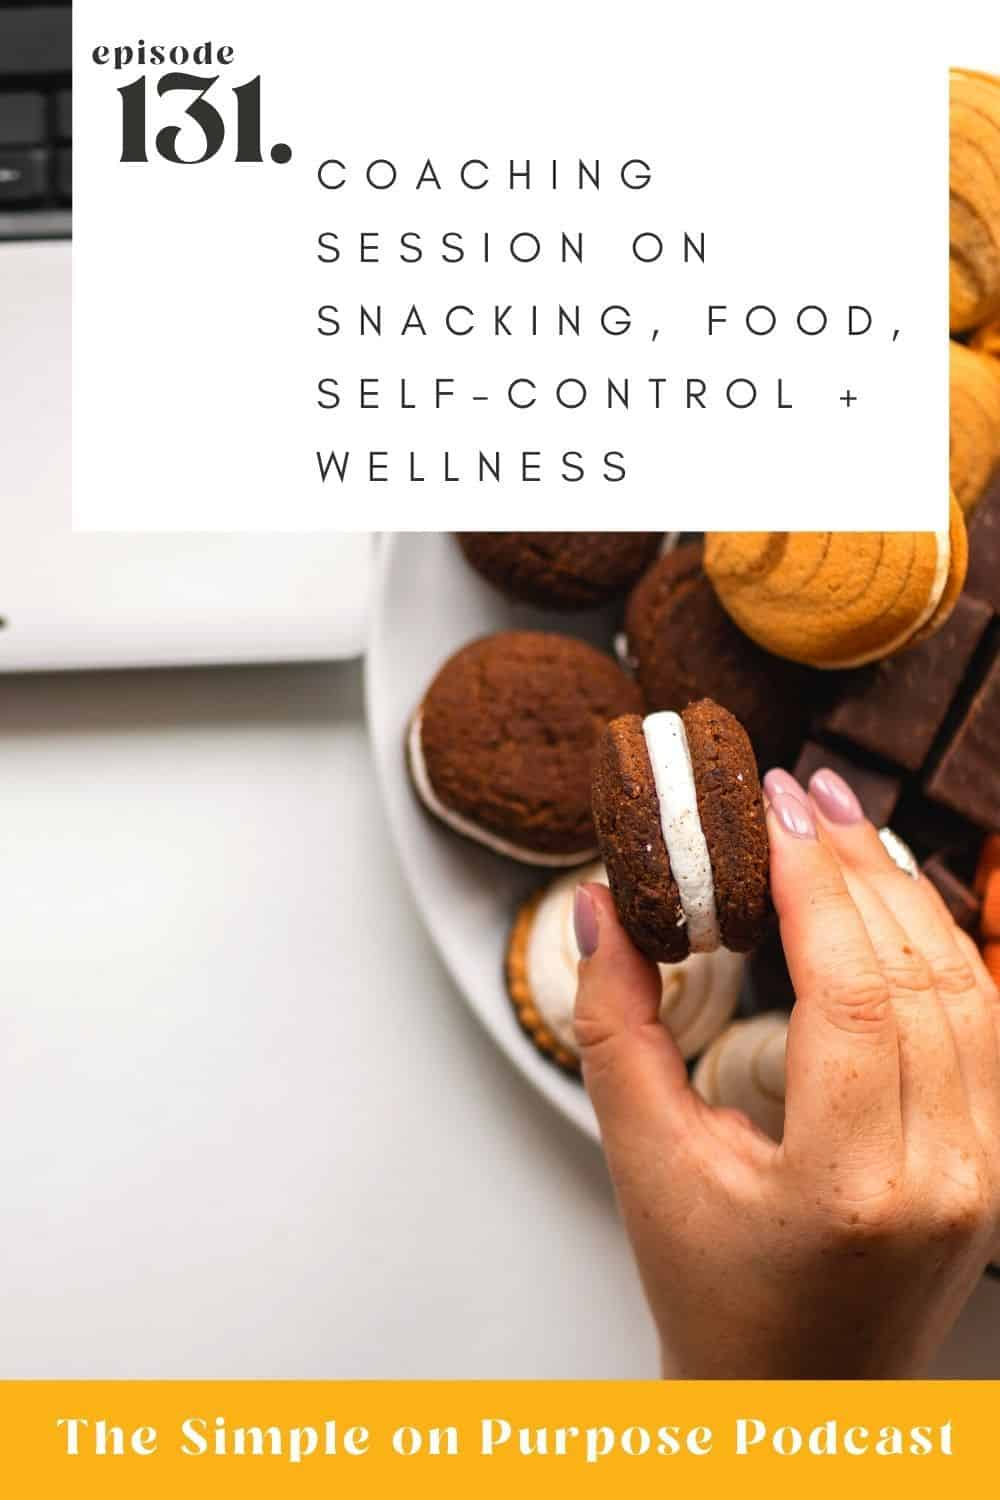 Coaching session on snacking, food, self control and wellness with Suzie